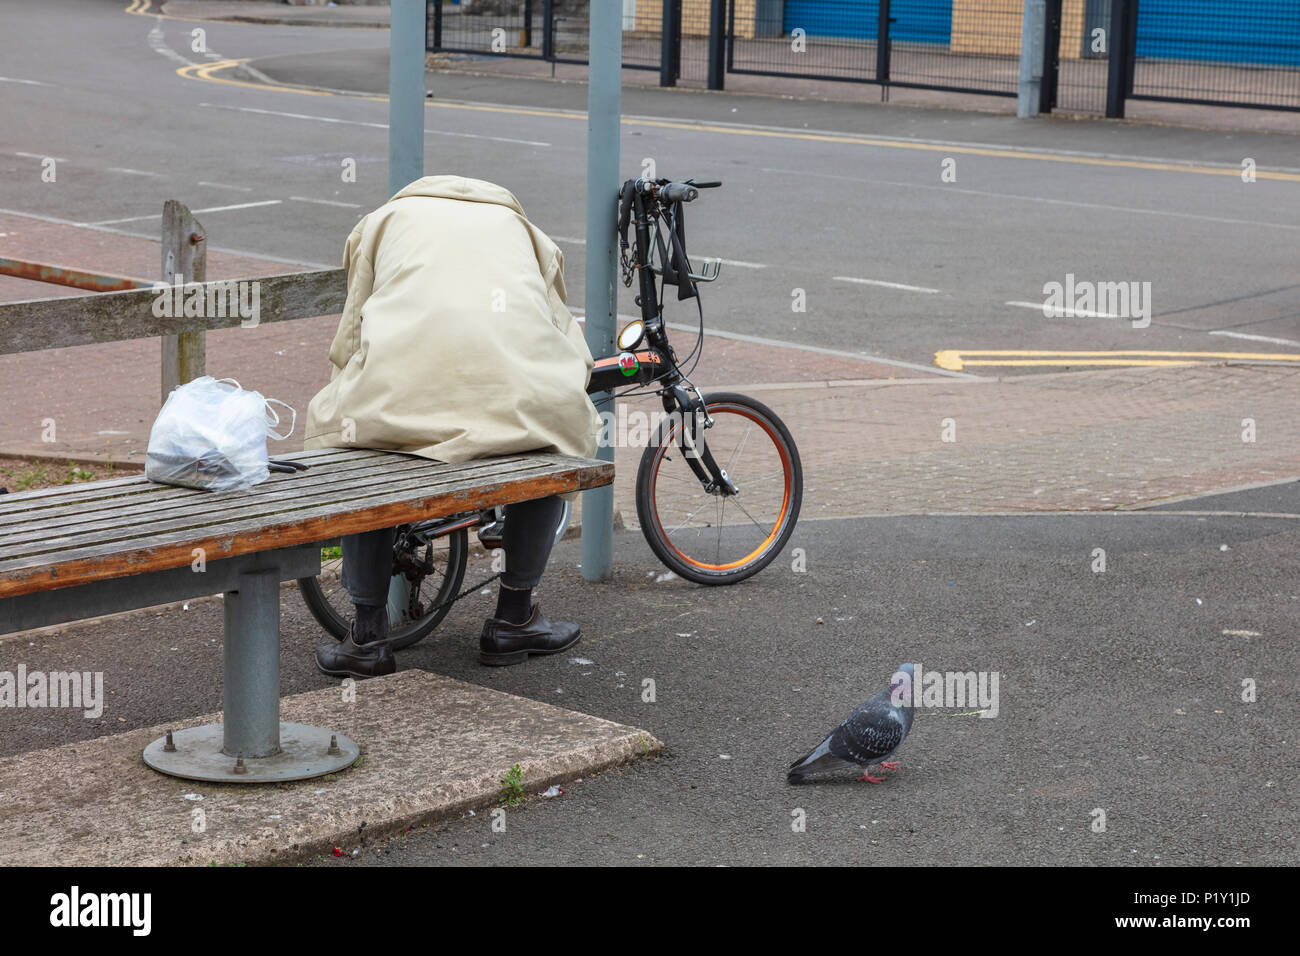 An elderly male cyclist sits on a bench in Penarth, and tries to mend a broken brake cable. A Pigeon watches on. Cardiff, Wales, UK - Stock Image